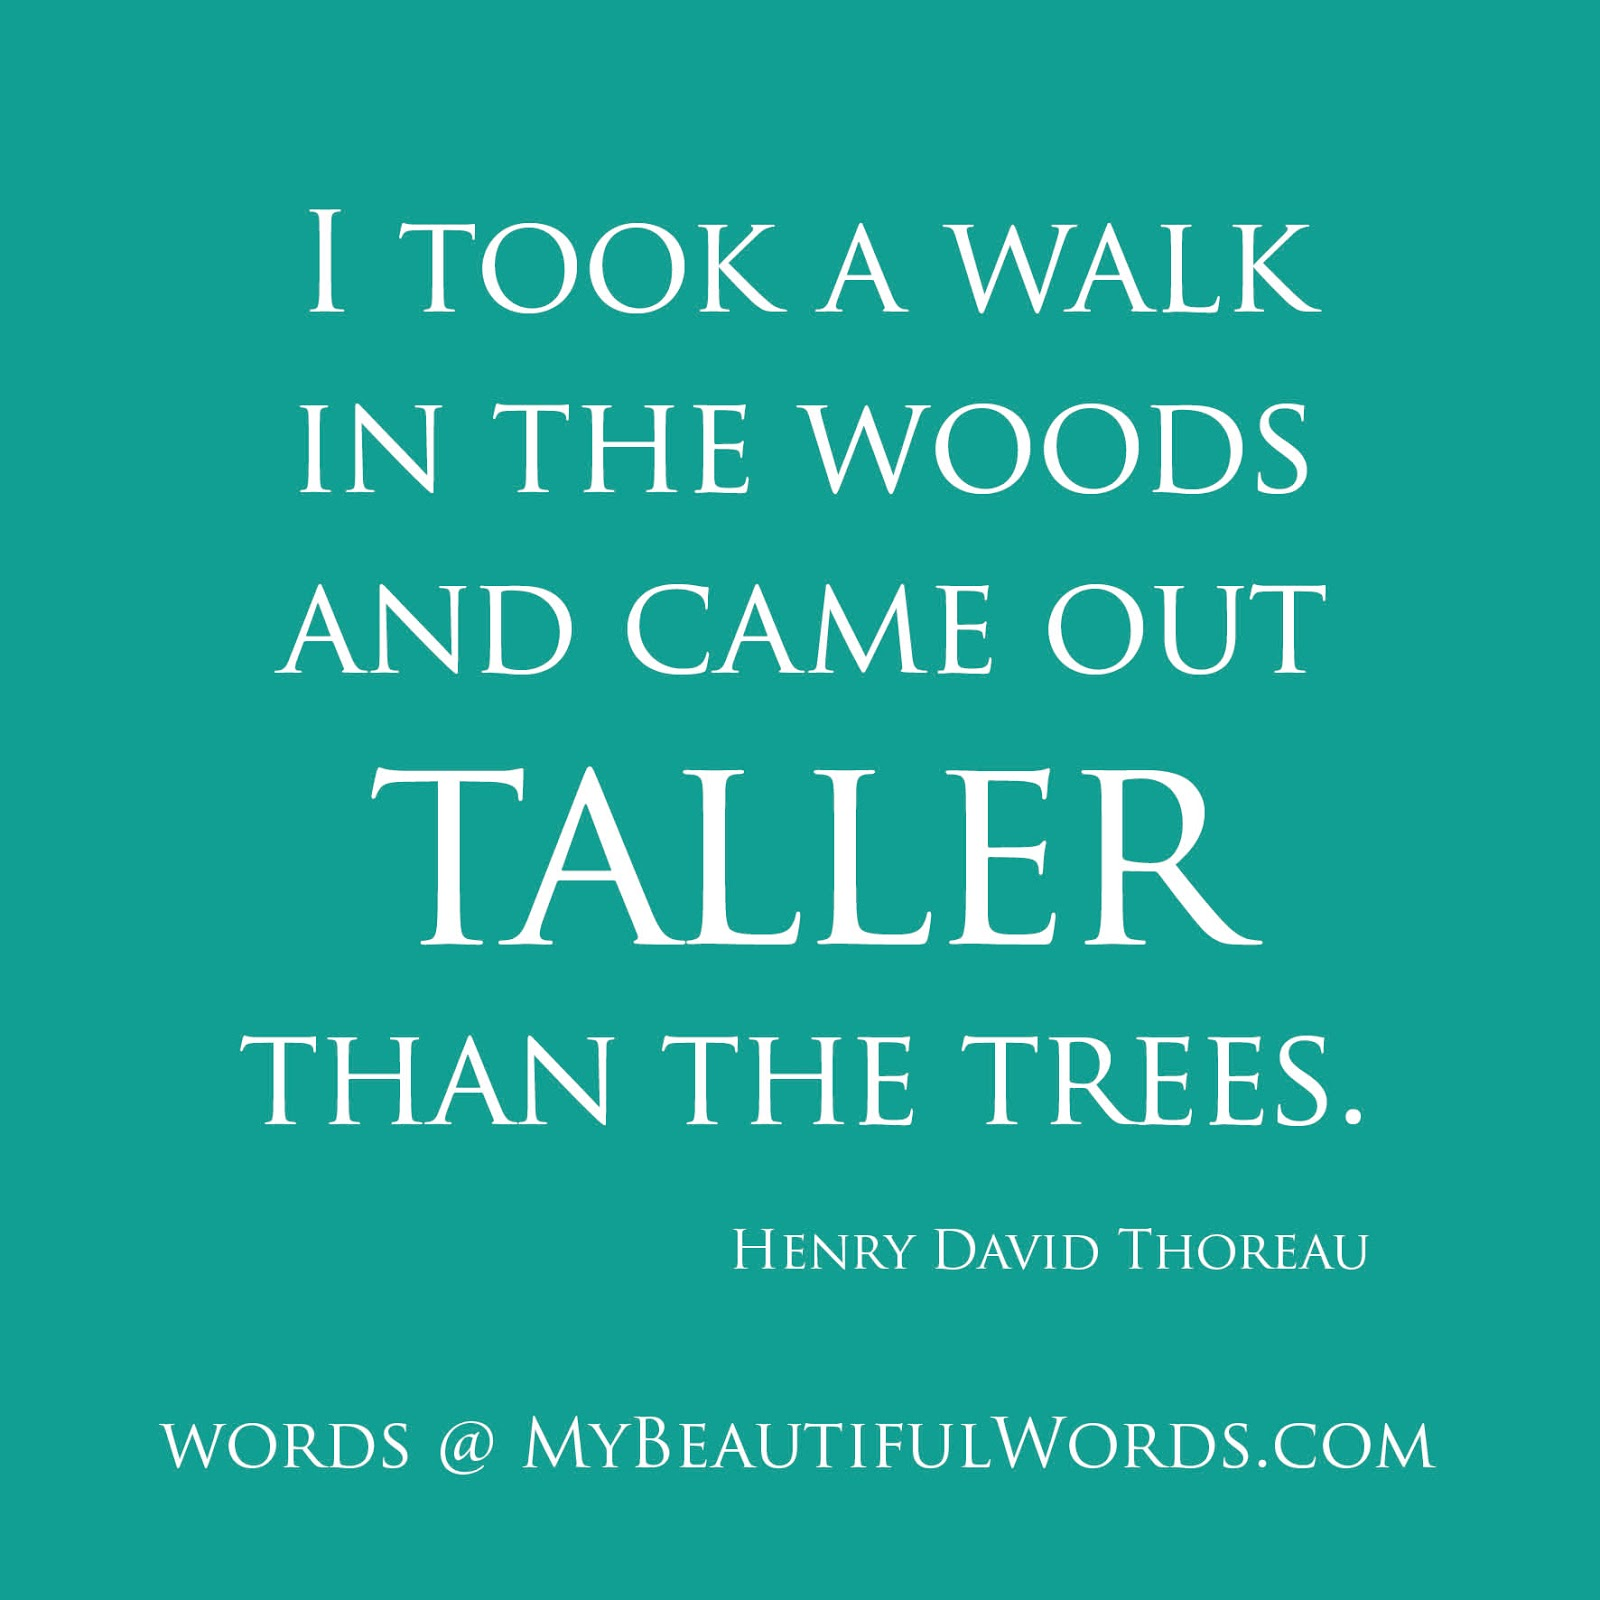 My Beautiful Words Taller Than The Trees